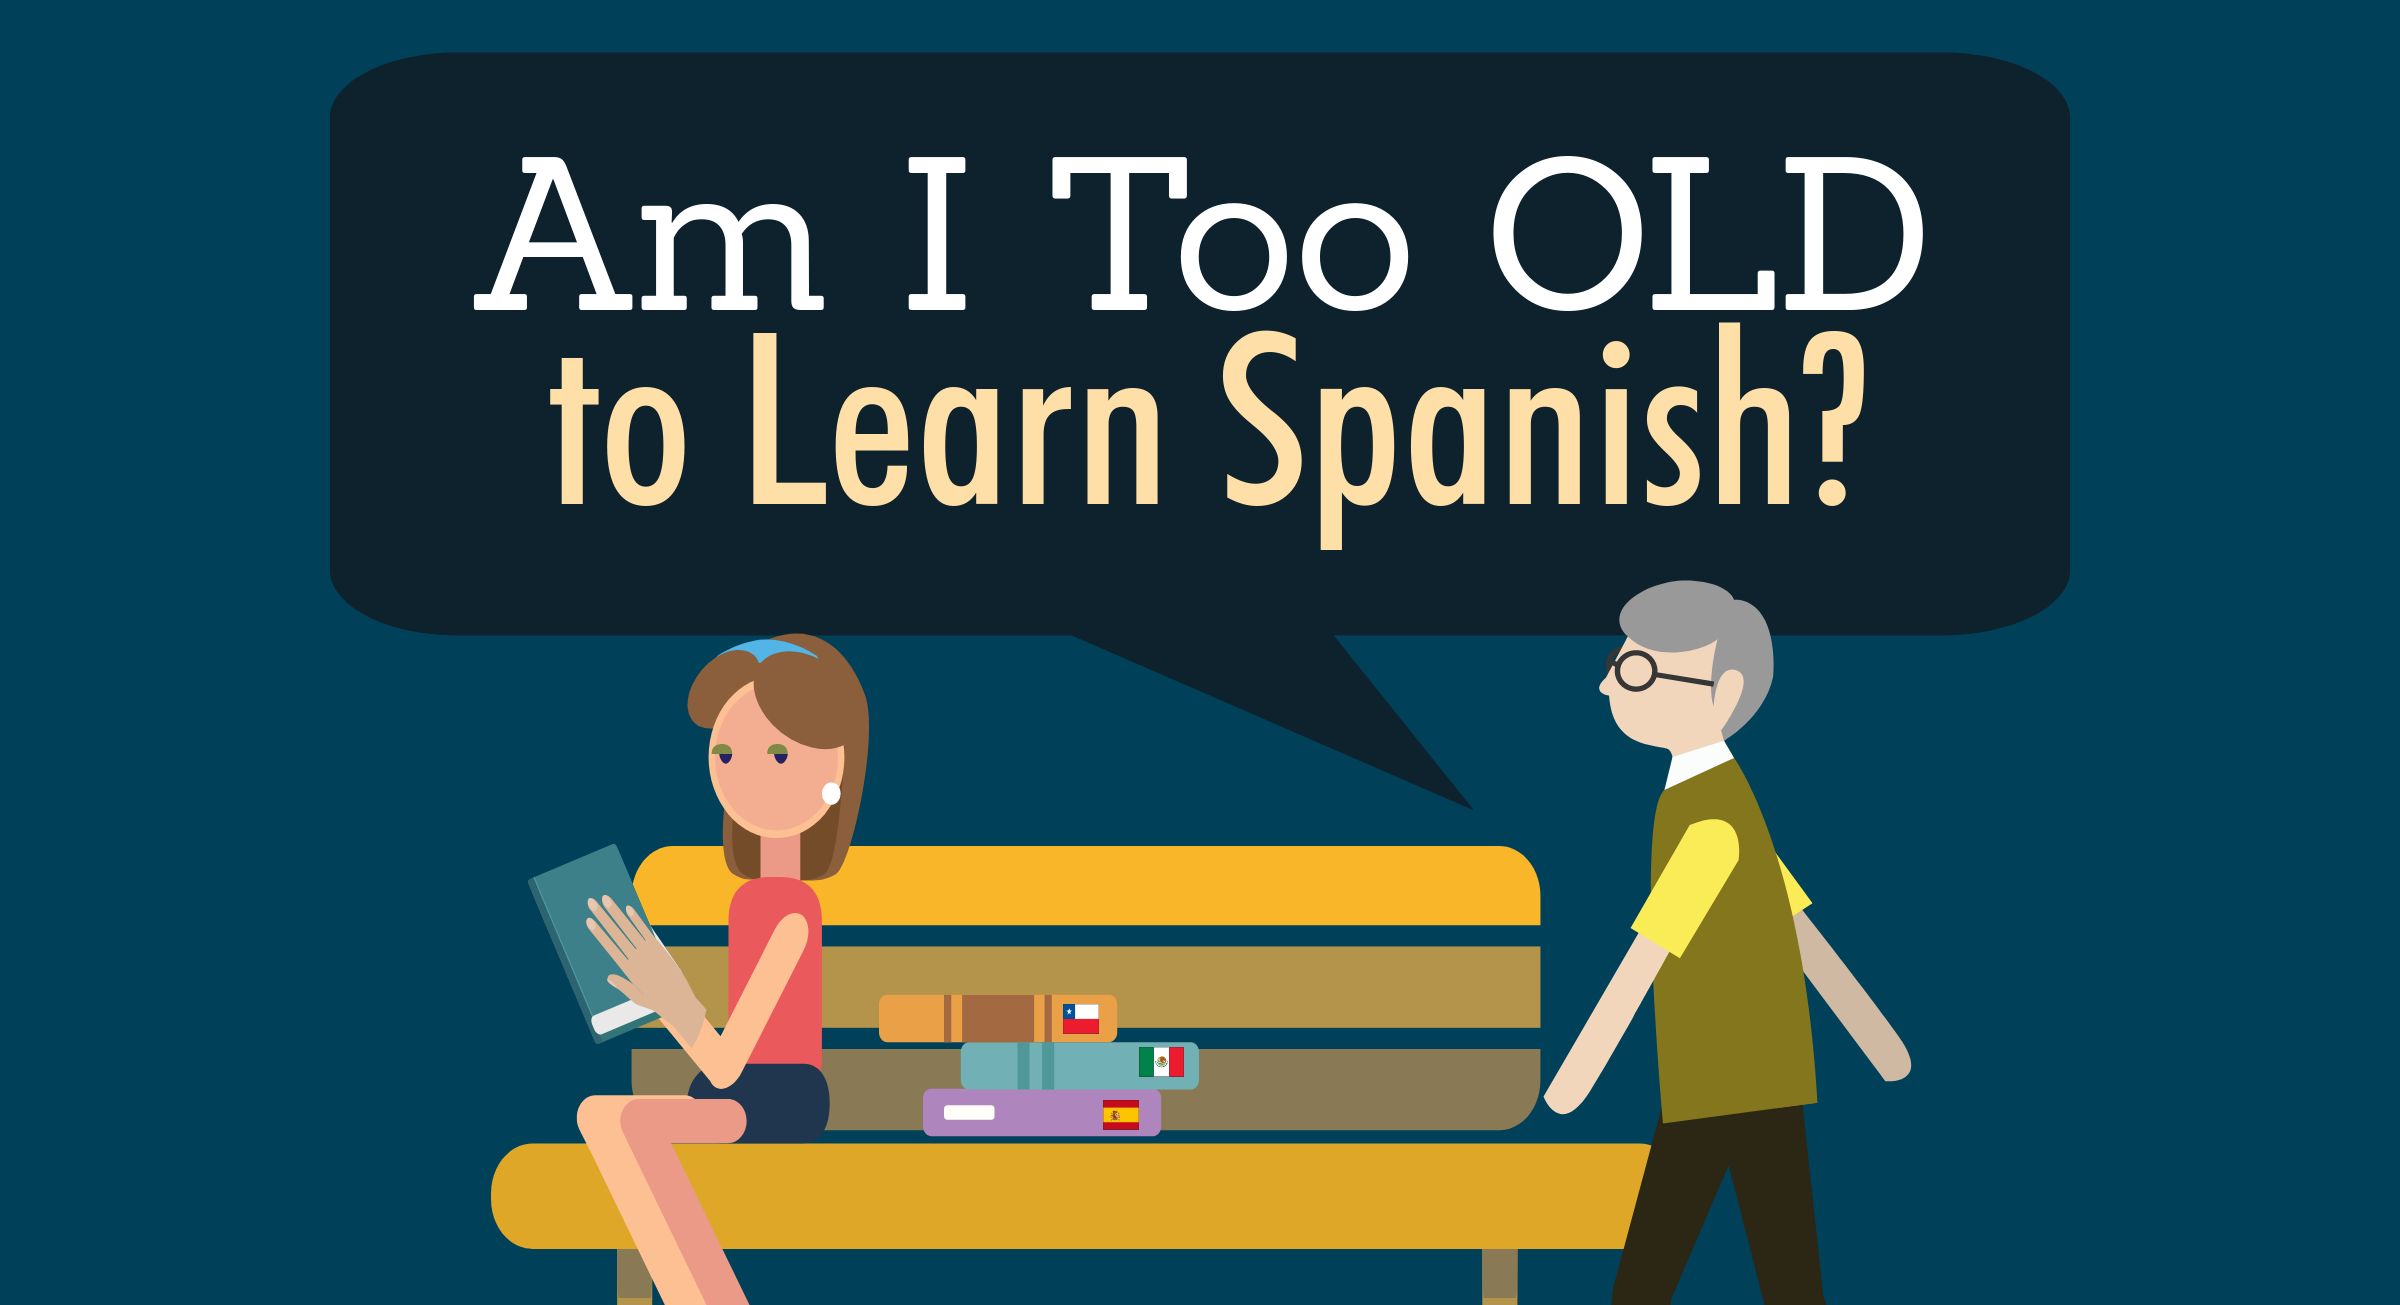 Am I Too Old to Learn Spanish?